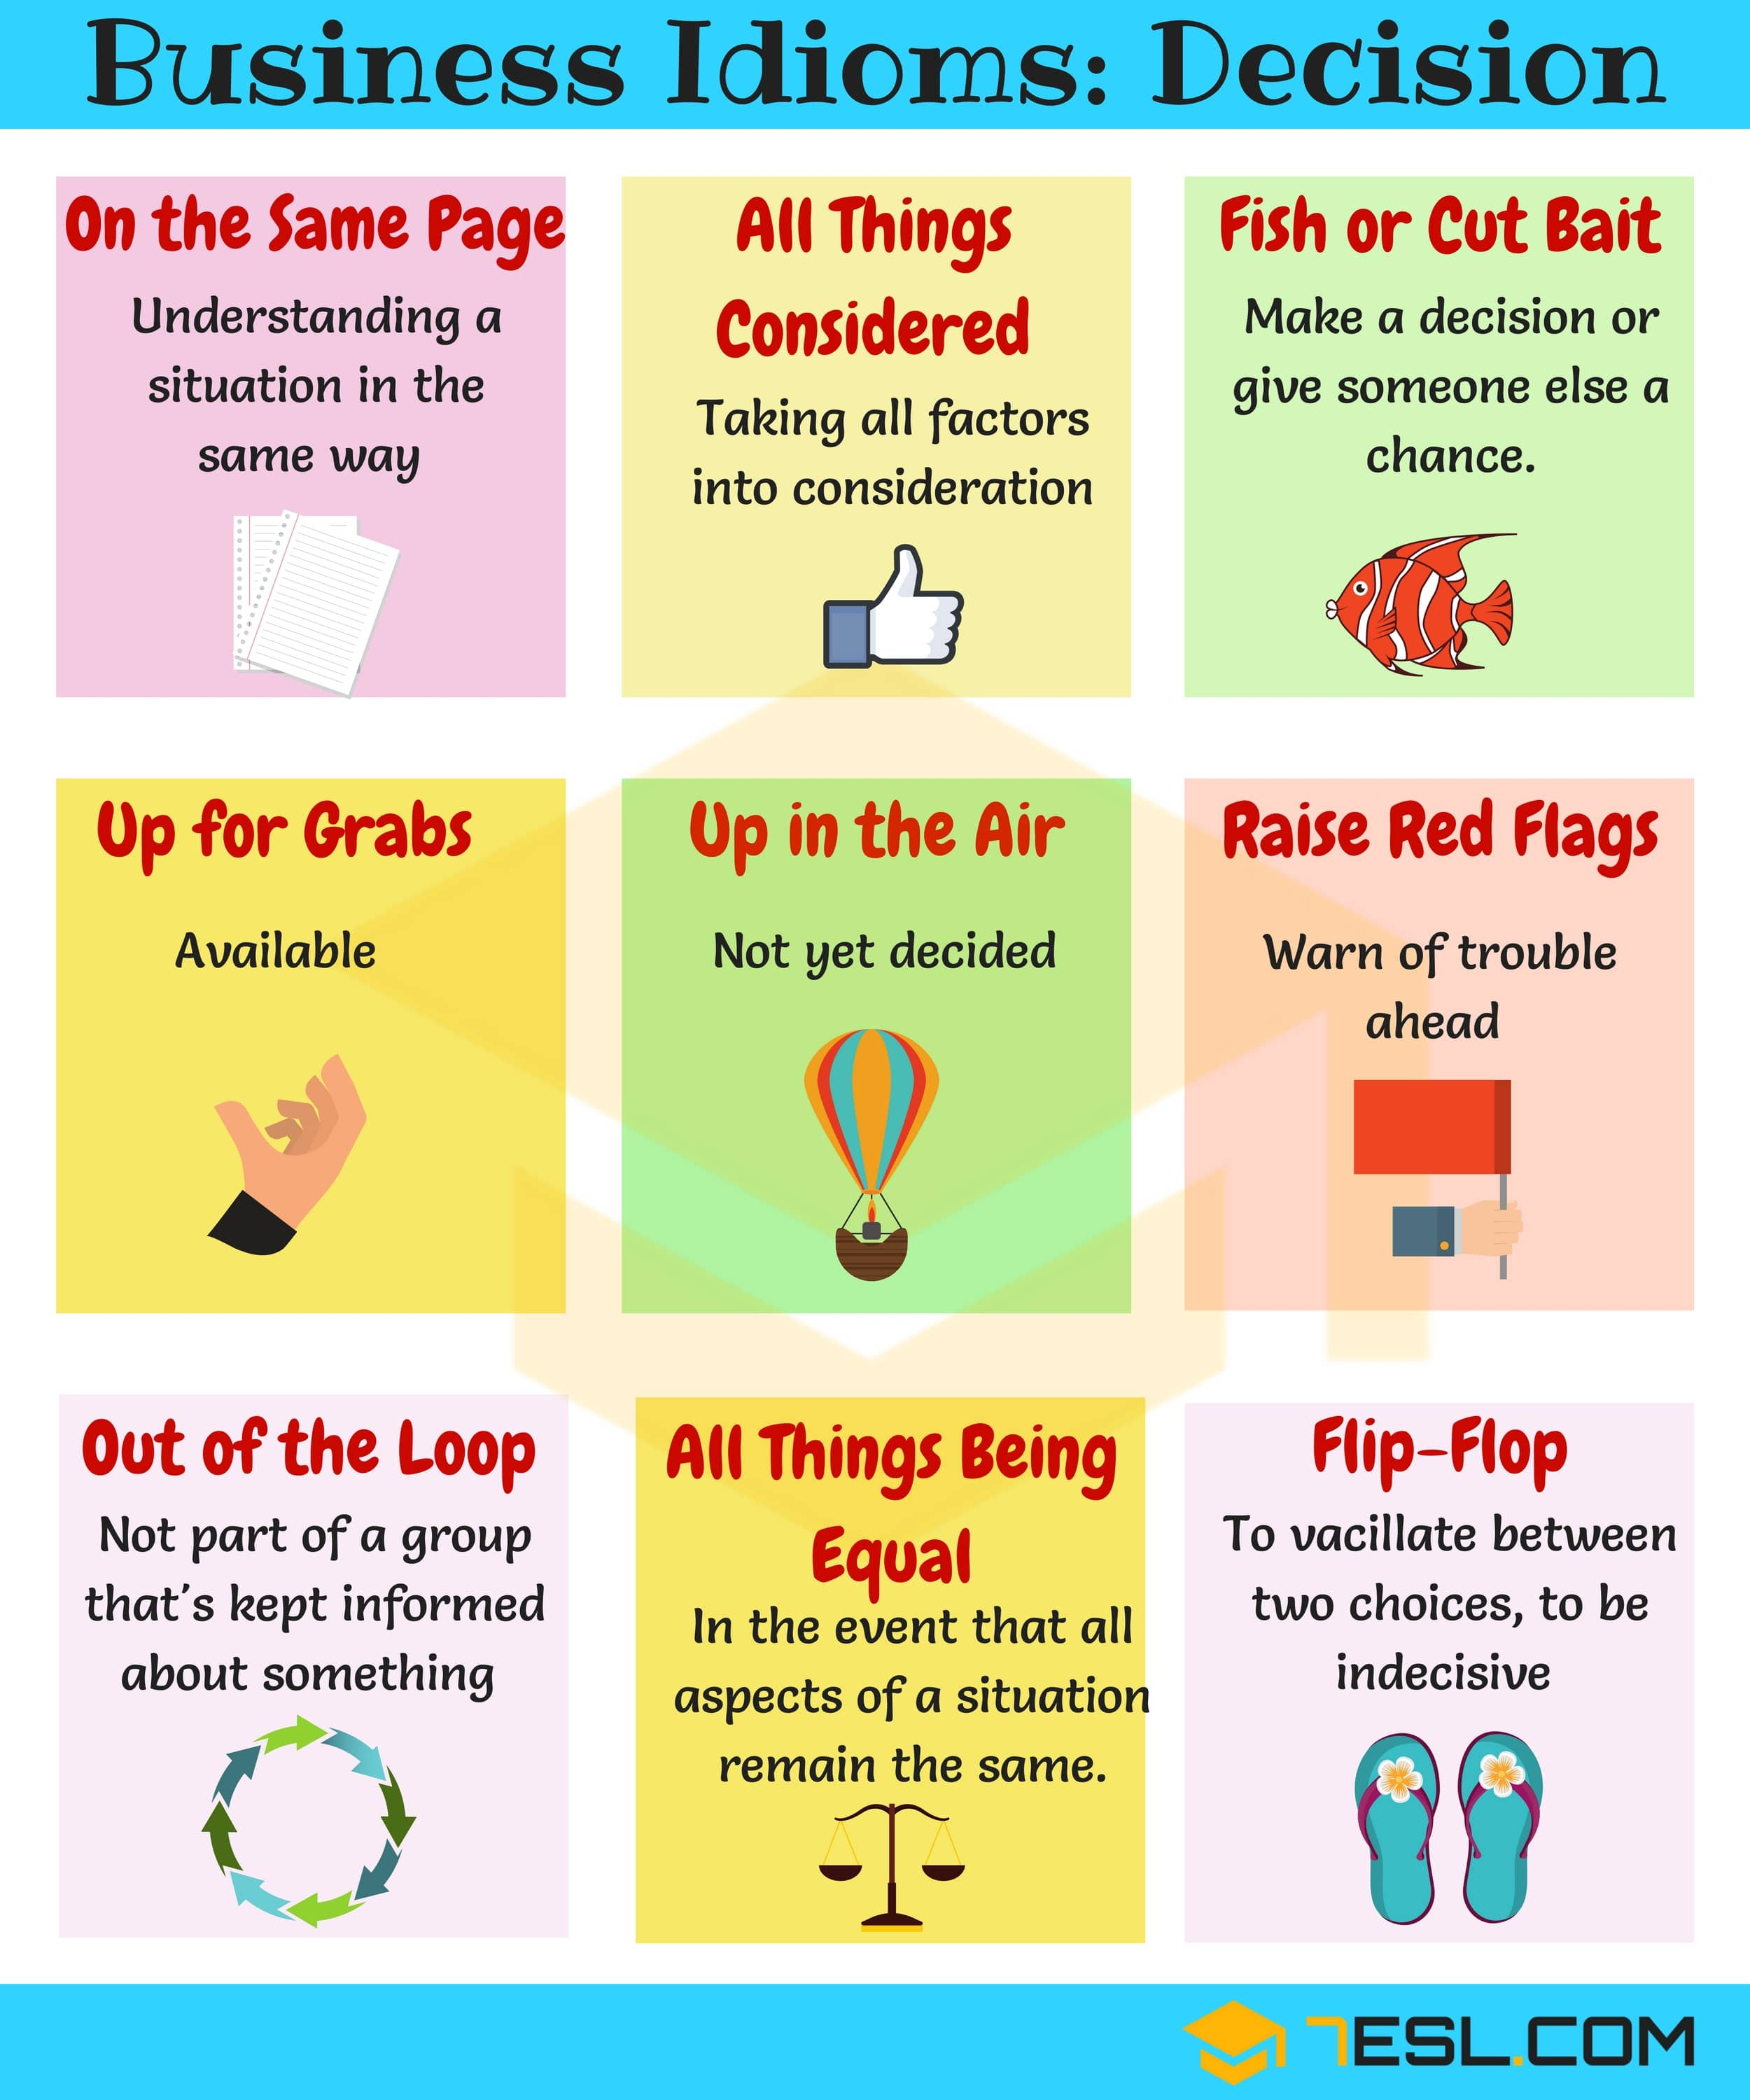 15 Useful Business Idioms For Making Decisions